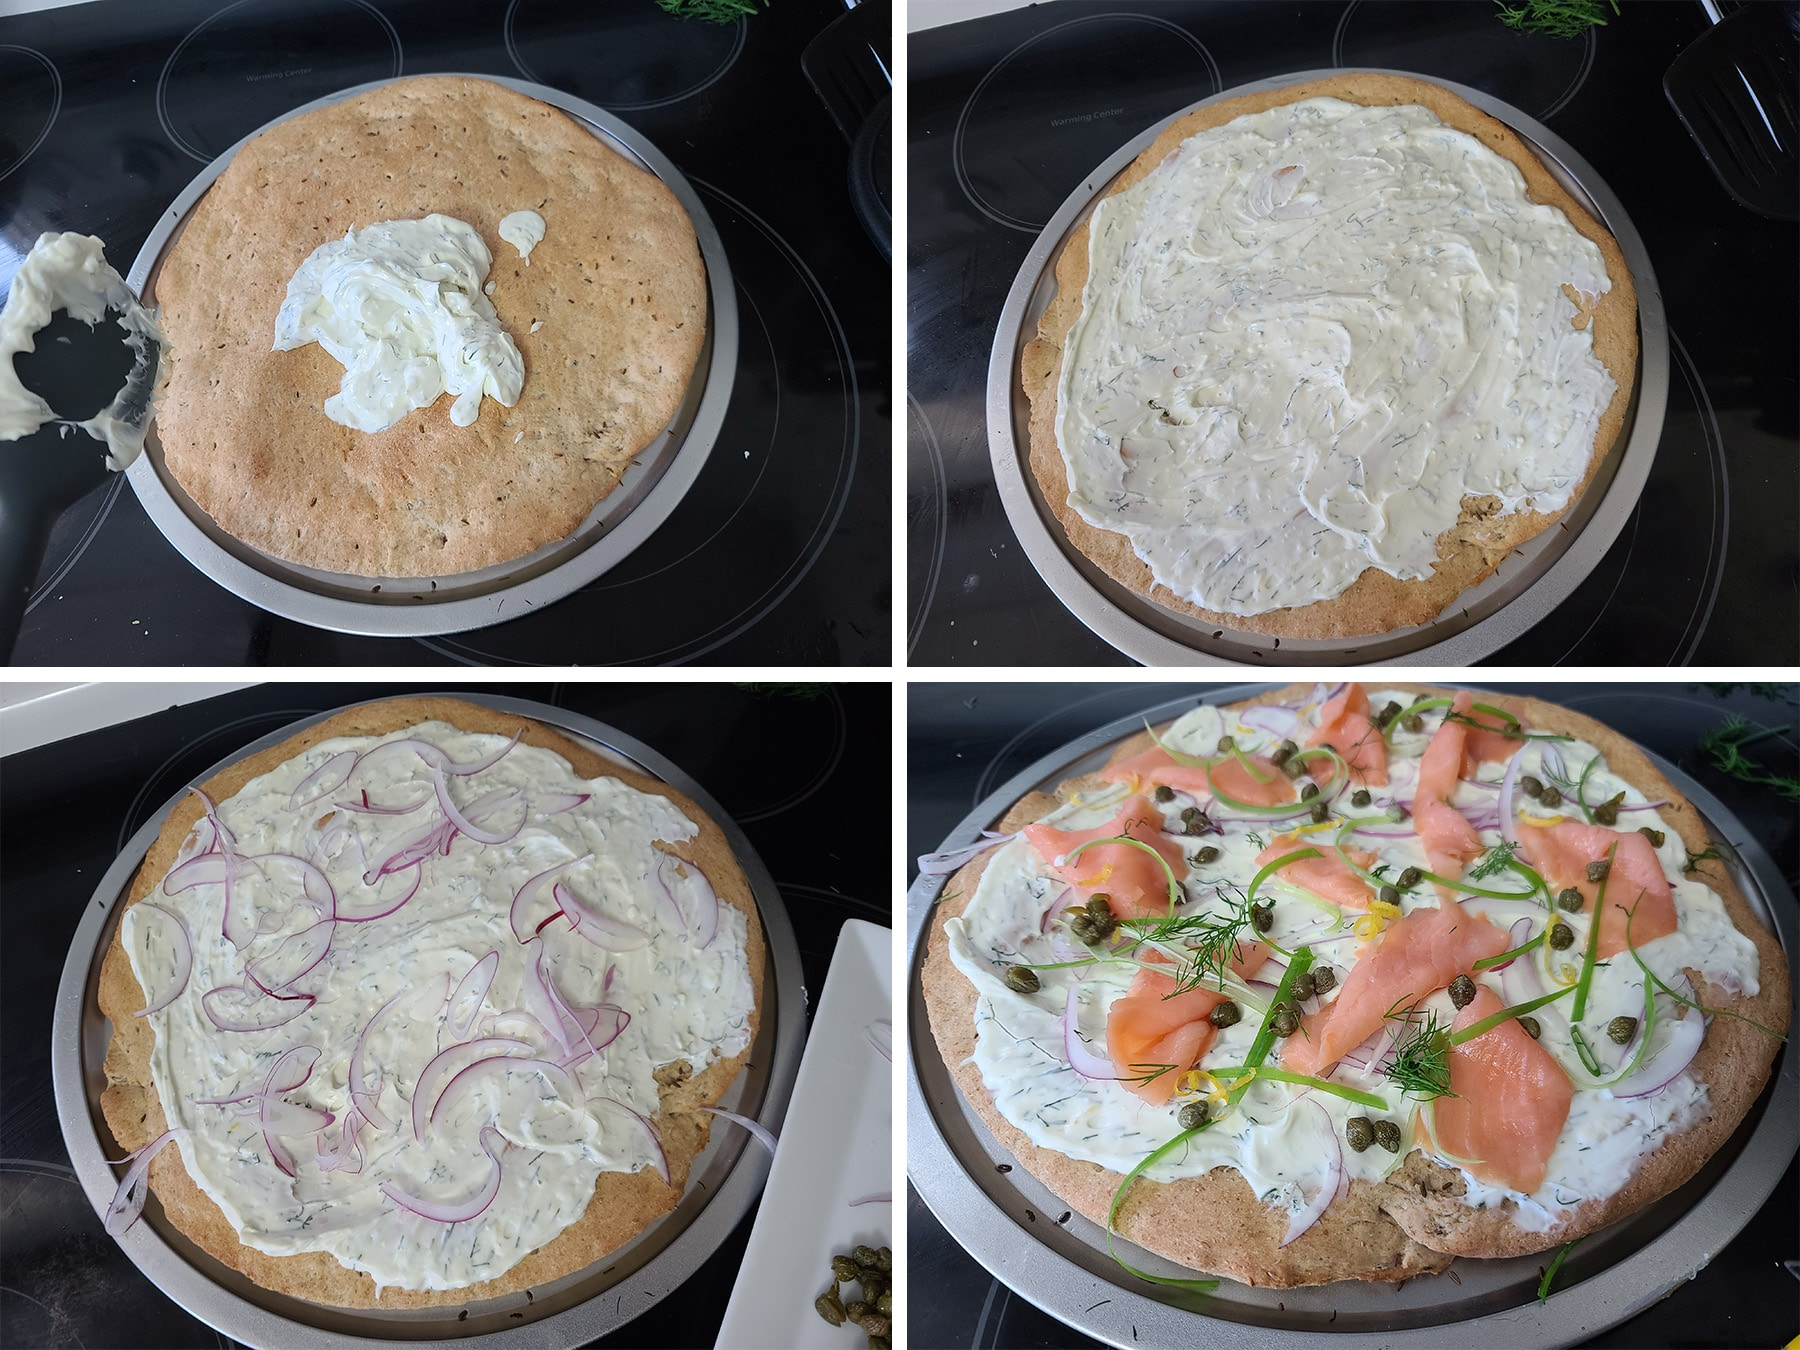 Cream cheese being spread on the rye pizza crust and topped with smoked salmon.